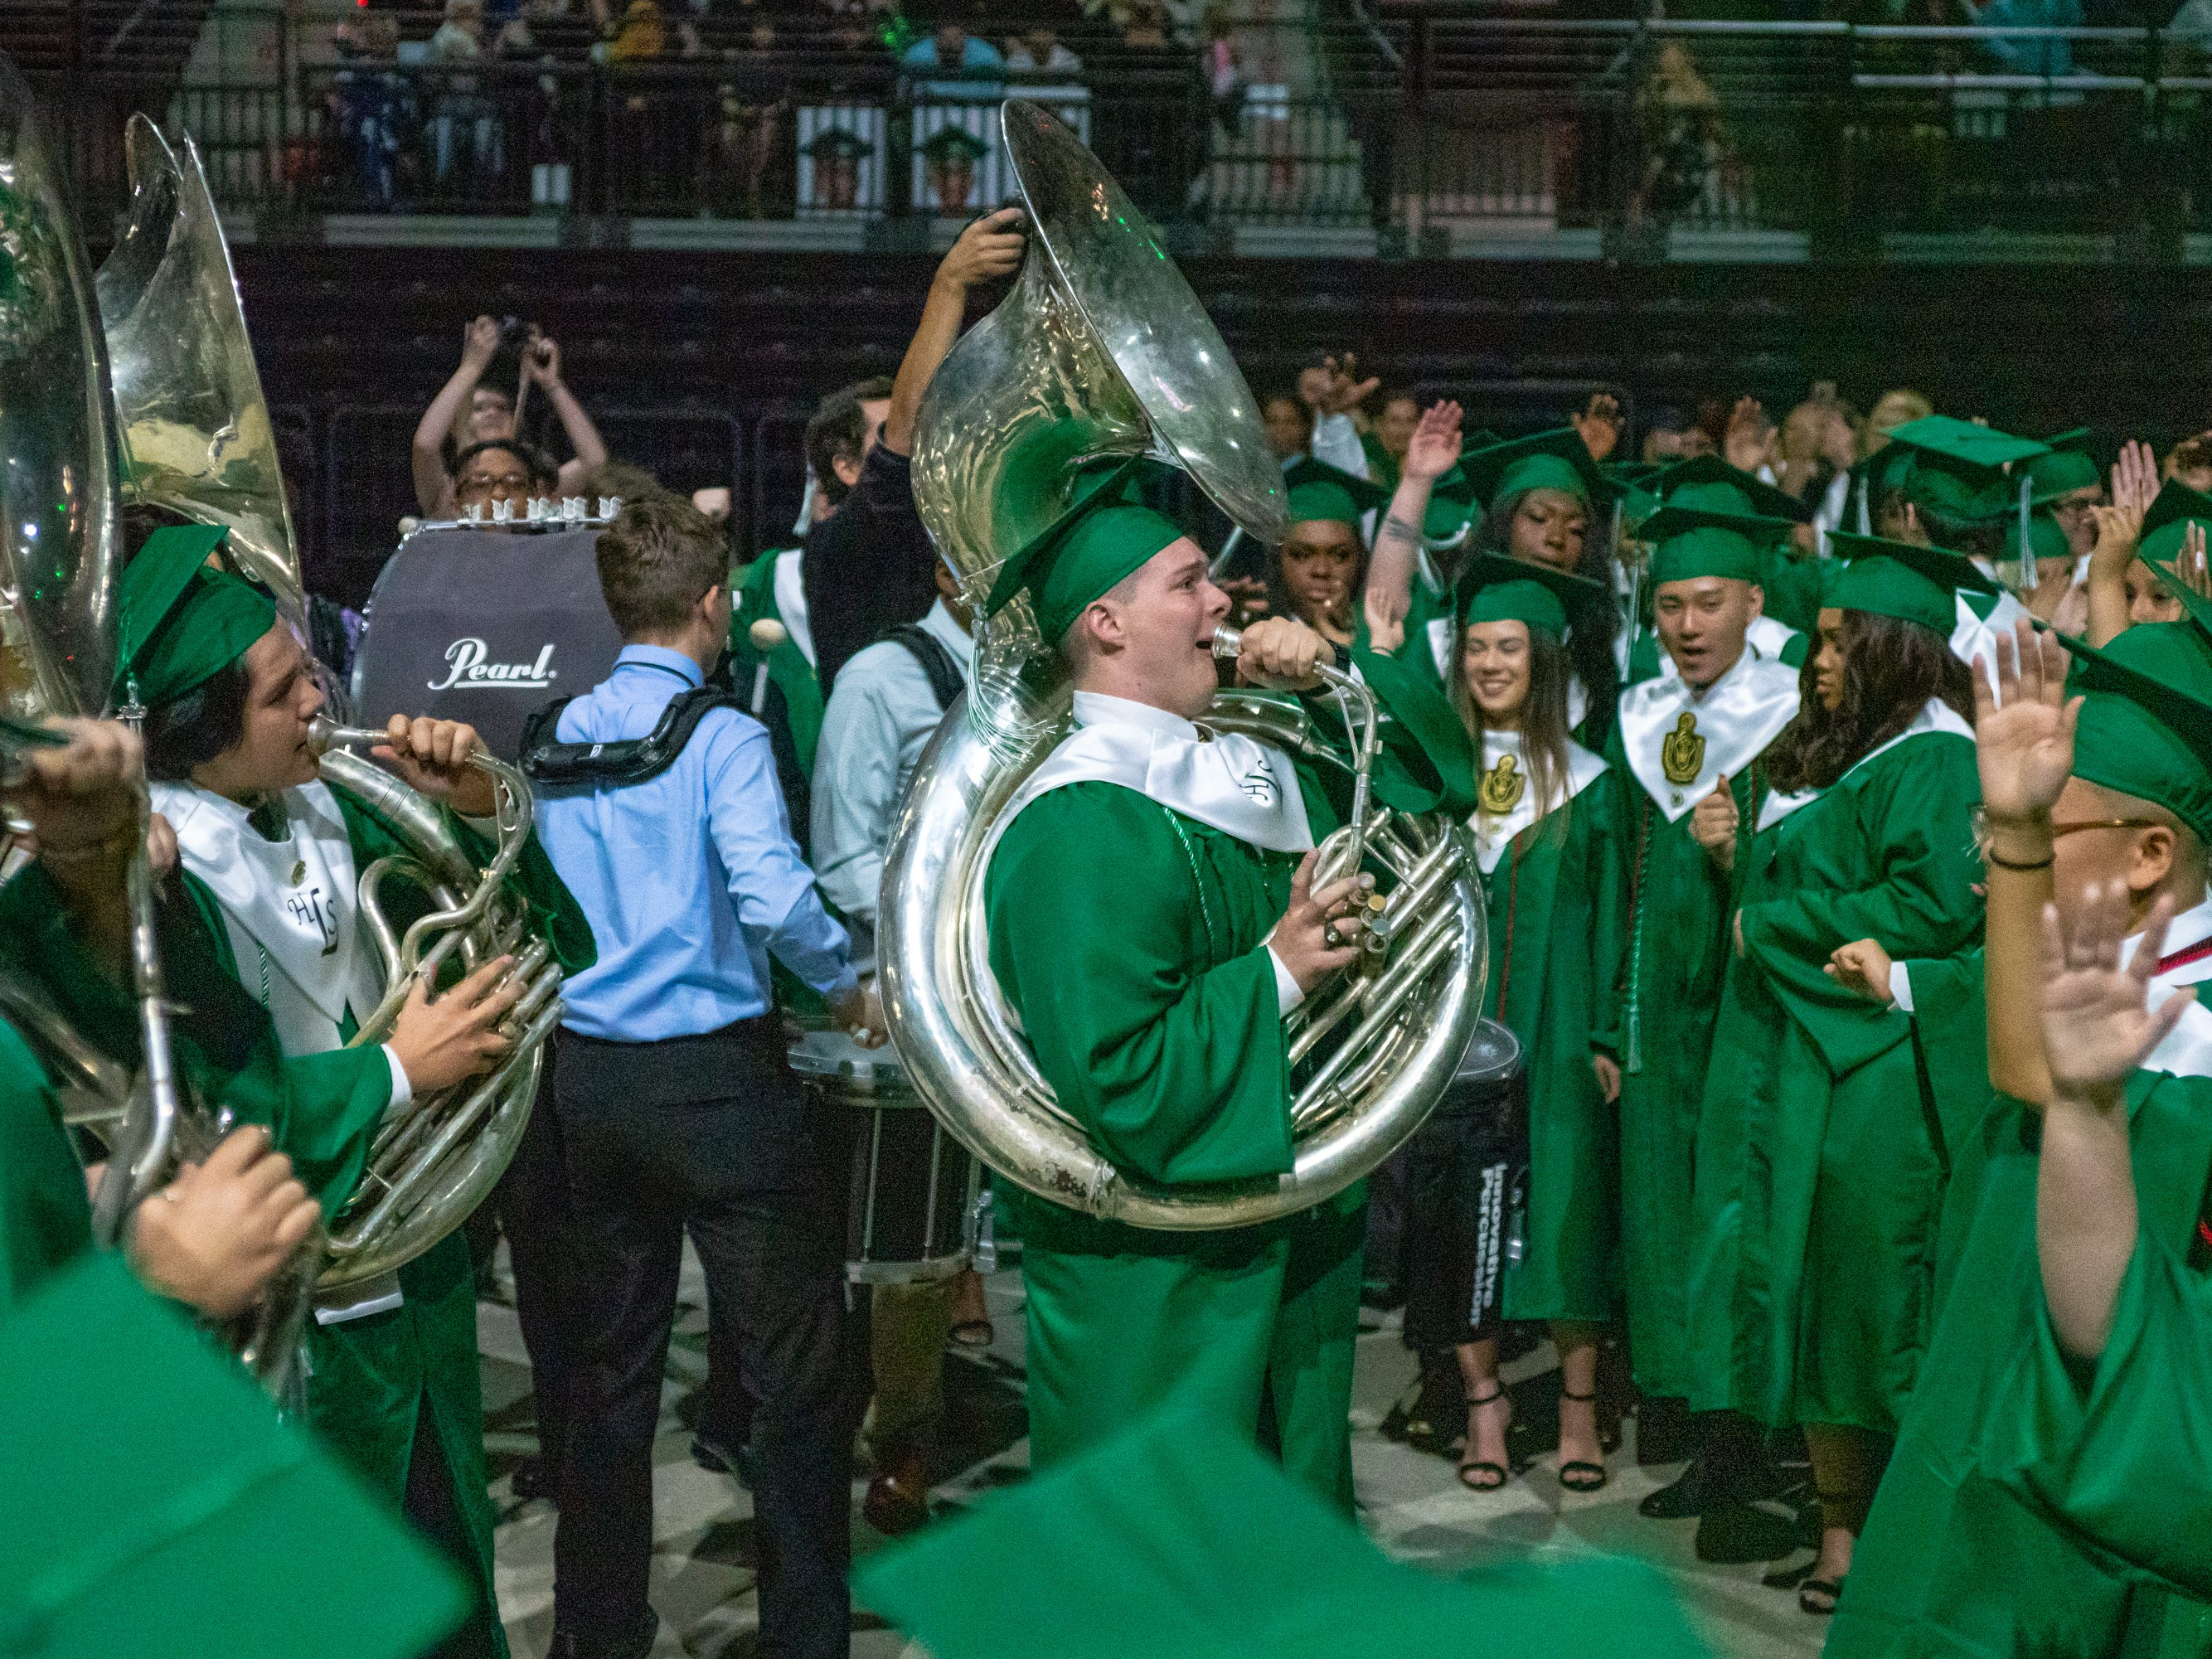 Lafayette high school's marching band performs during the ceremony as Lafayette High School holds its graduation ceremony at the Cajundome on Saturday, May 11, 2019.